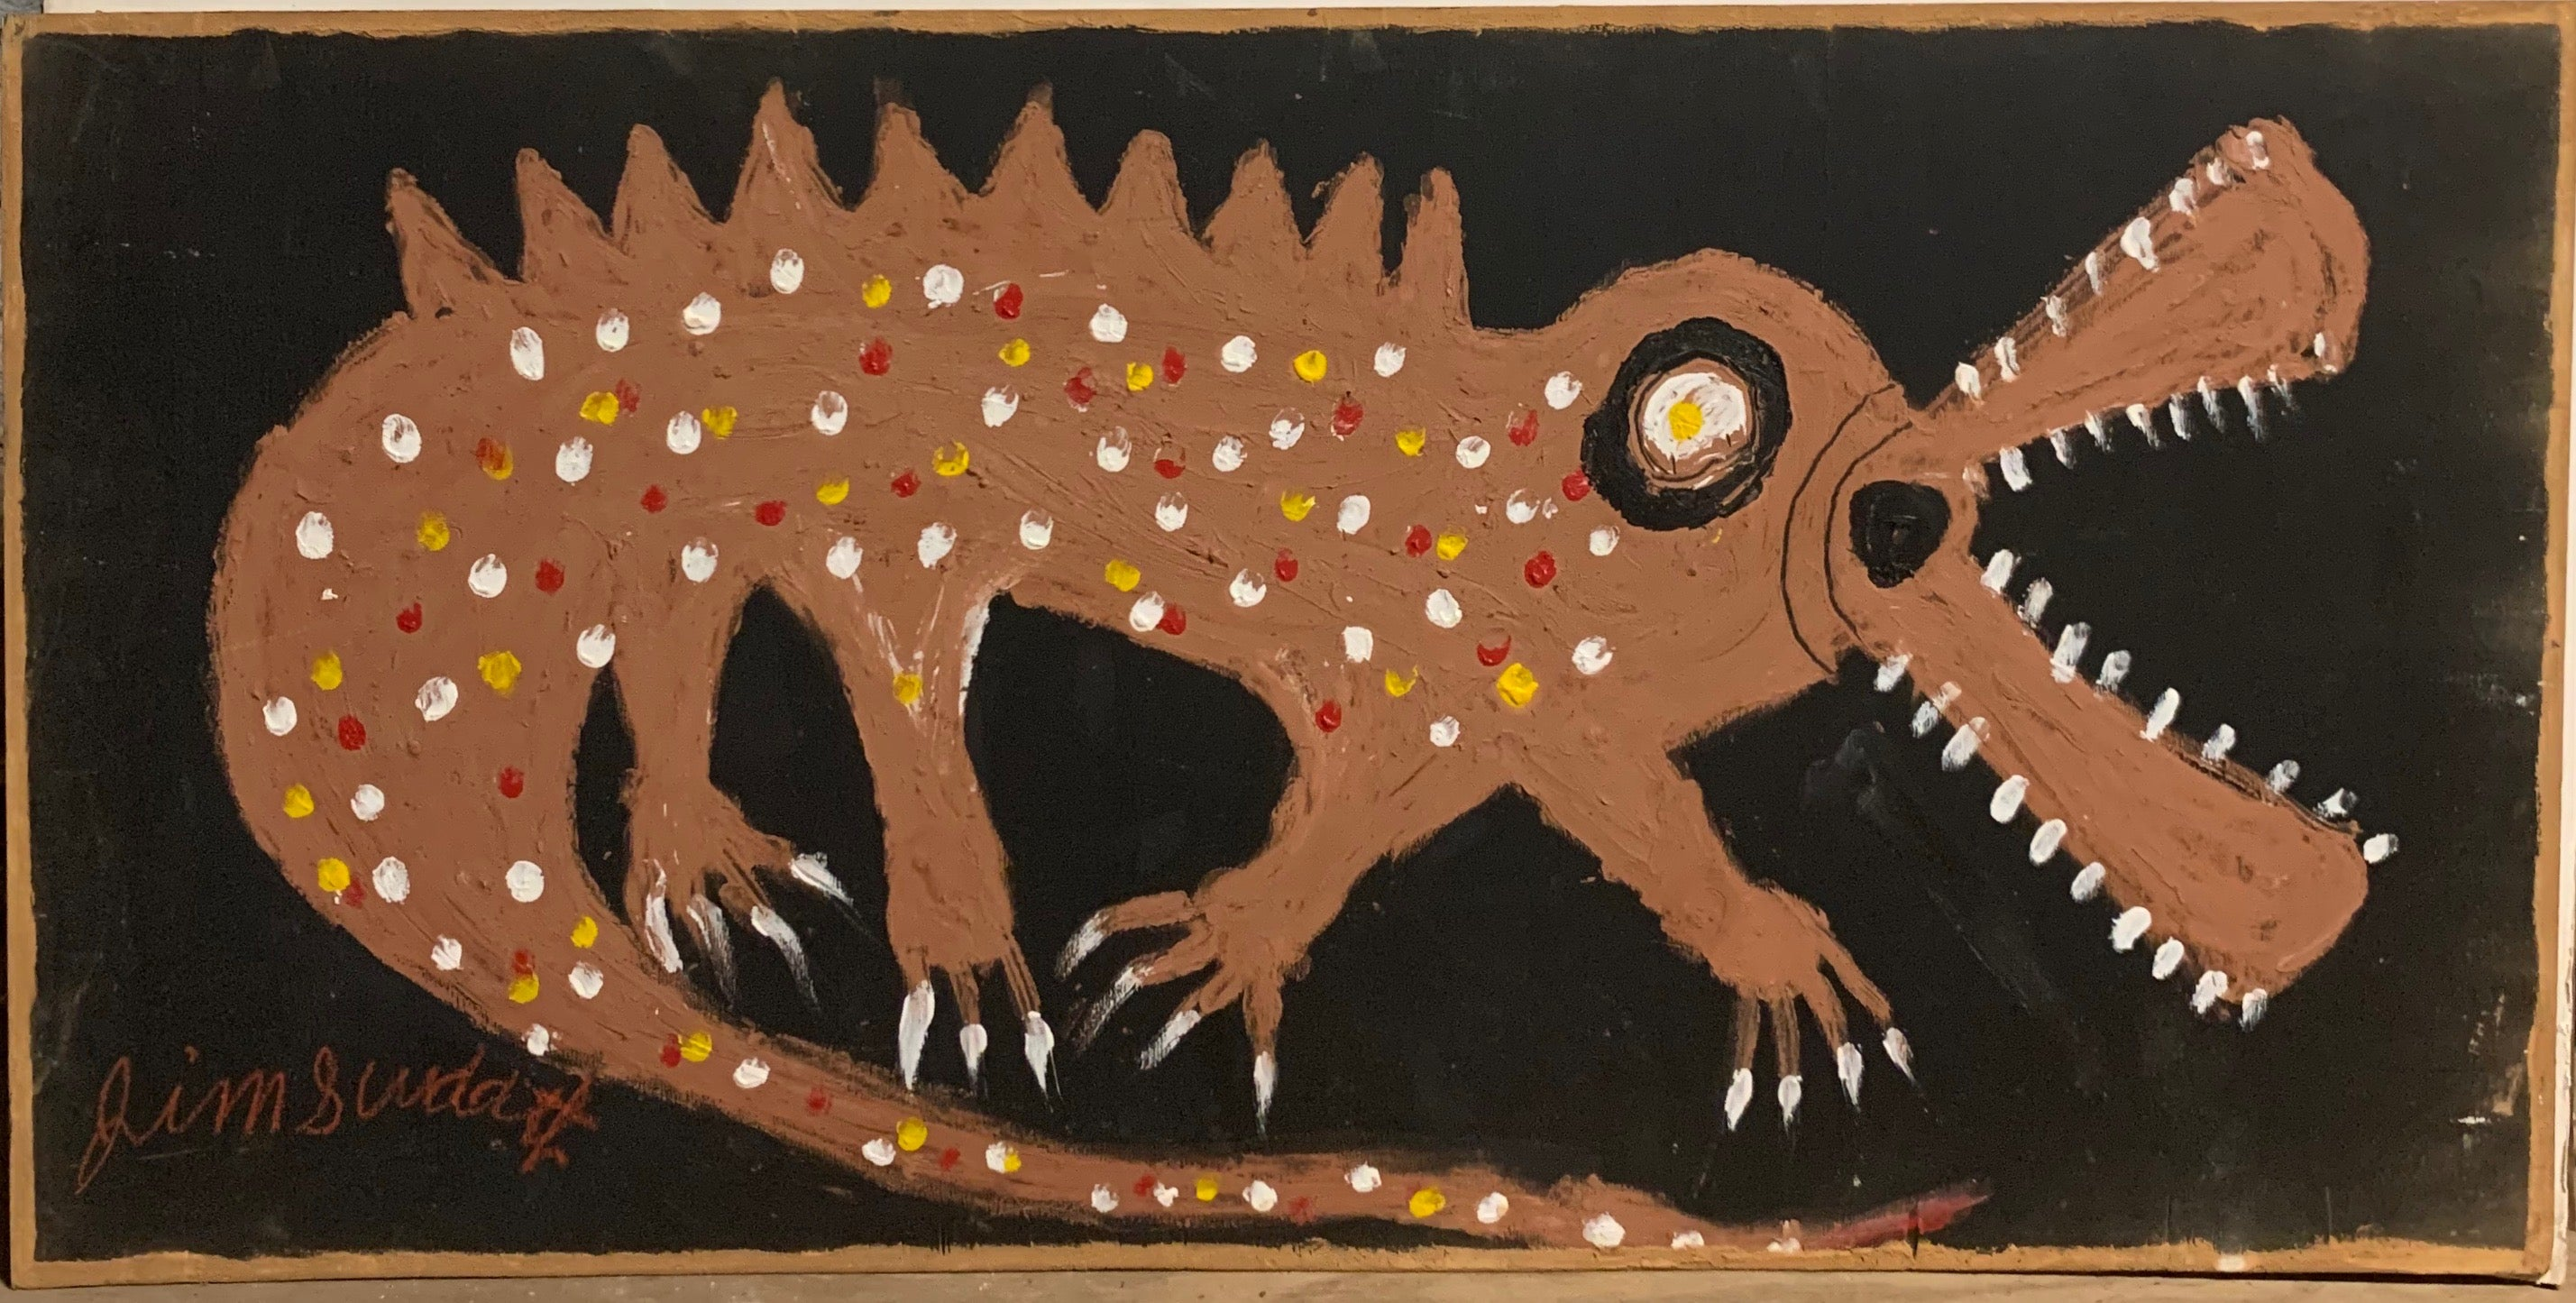 A painting of a polka-dotted alligator.